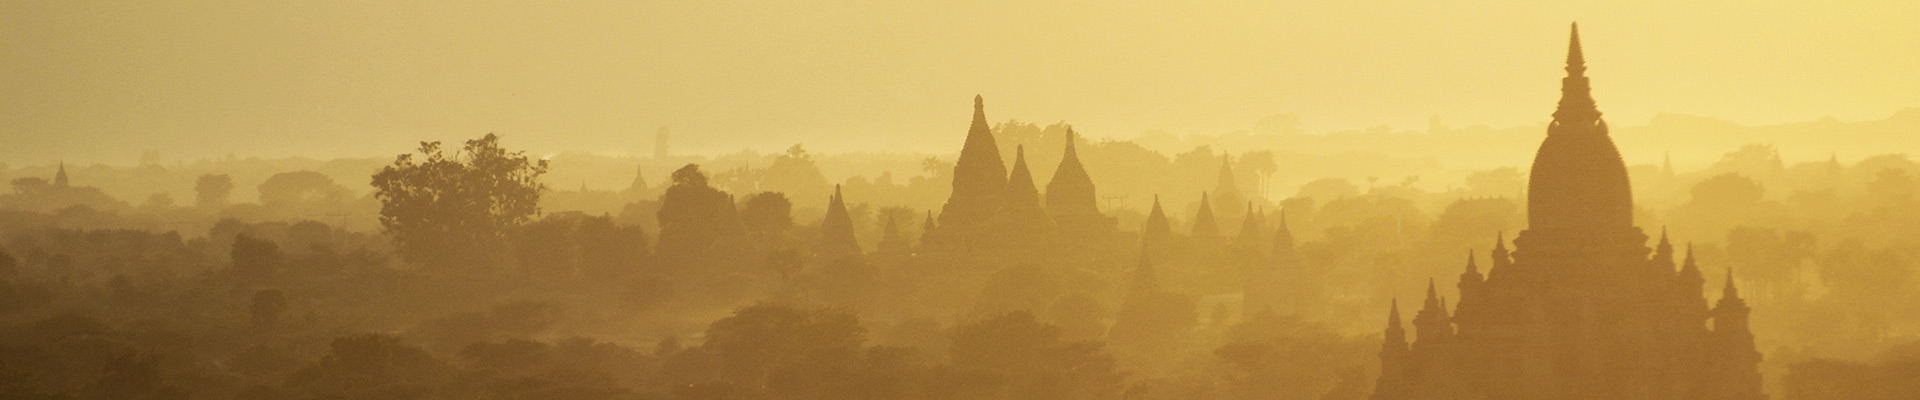 Top image temples de Bagan en Birmanie